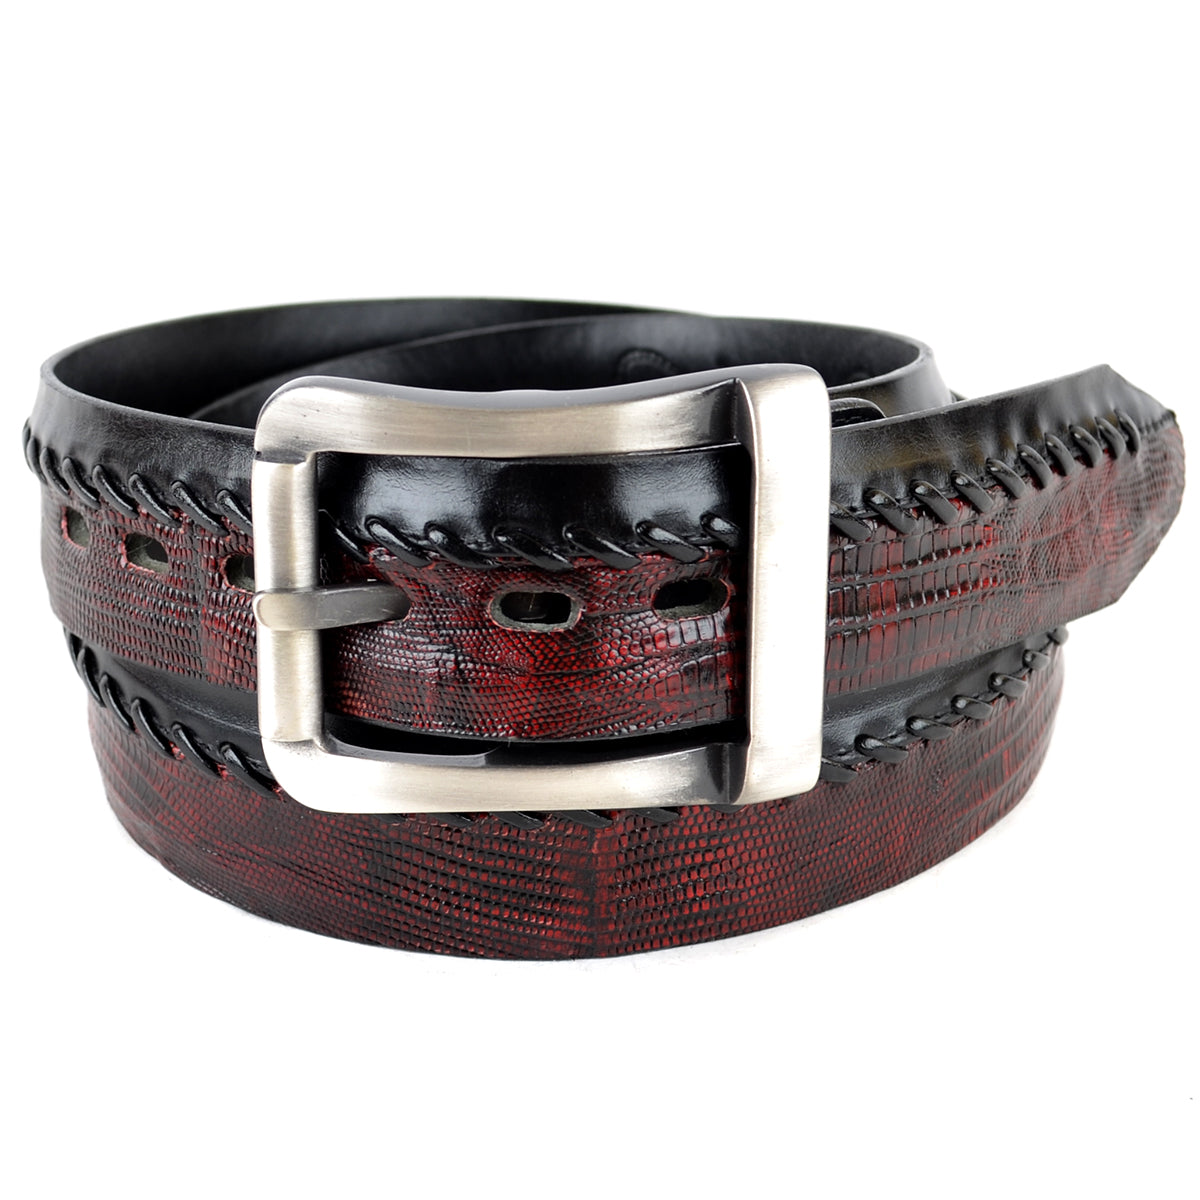 Genuine Lizard Teju Skin Casual Belt C2307